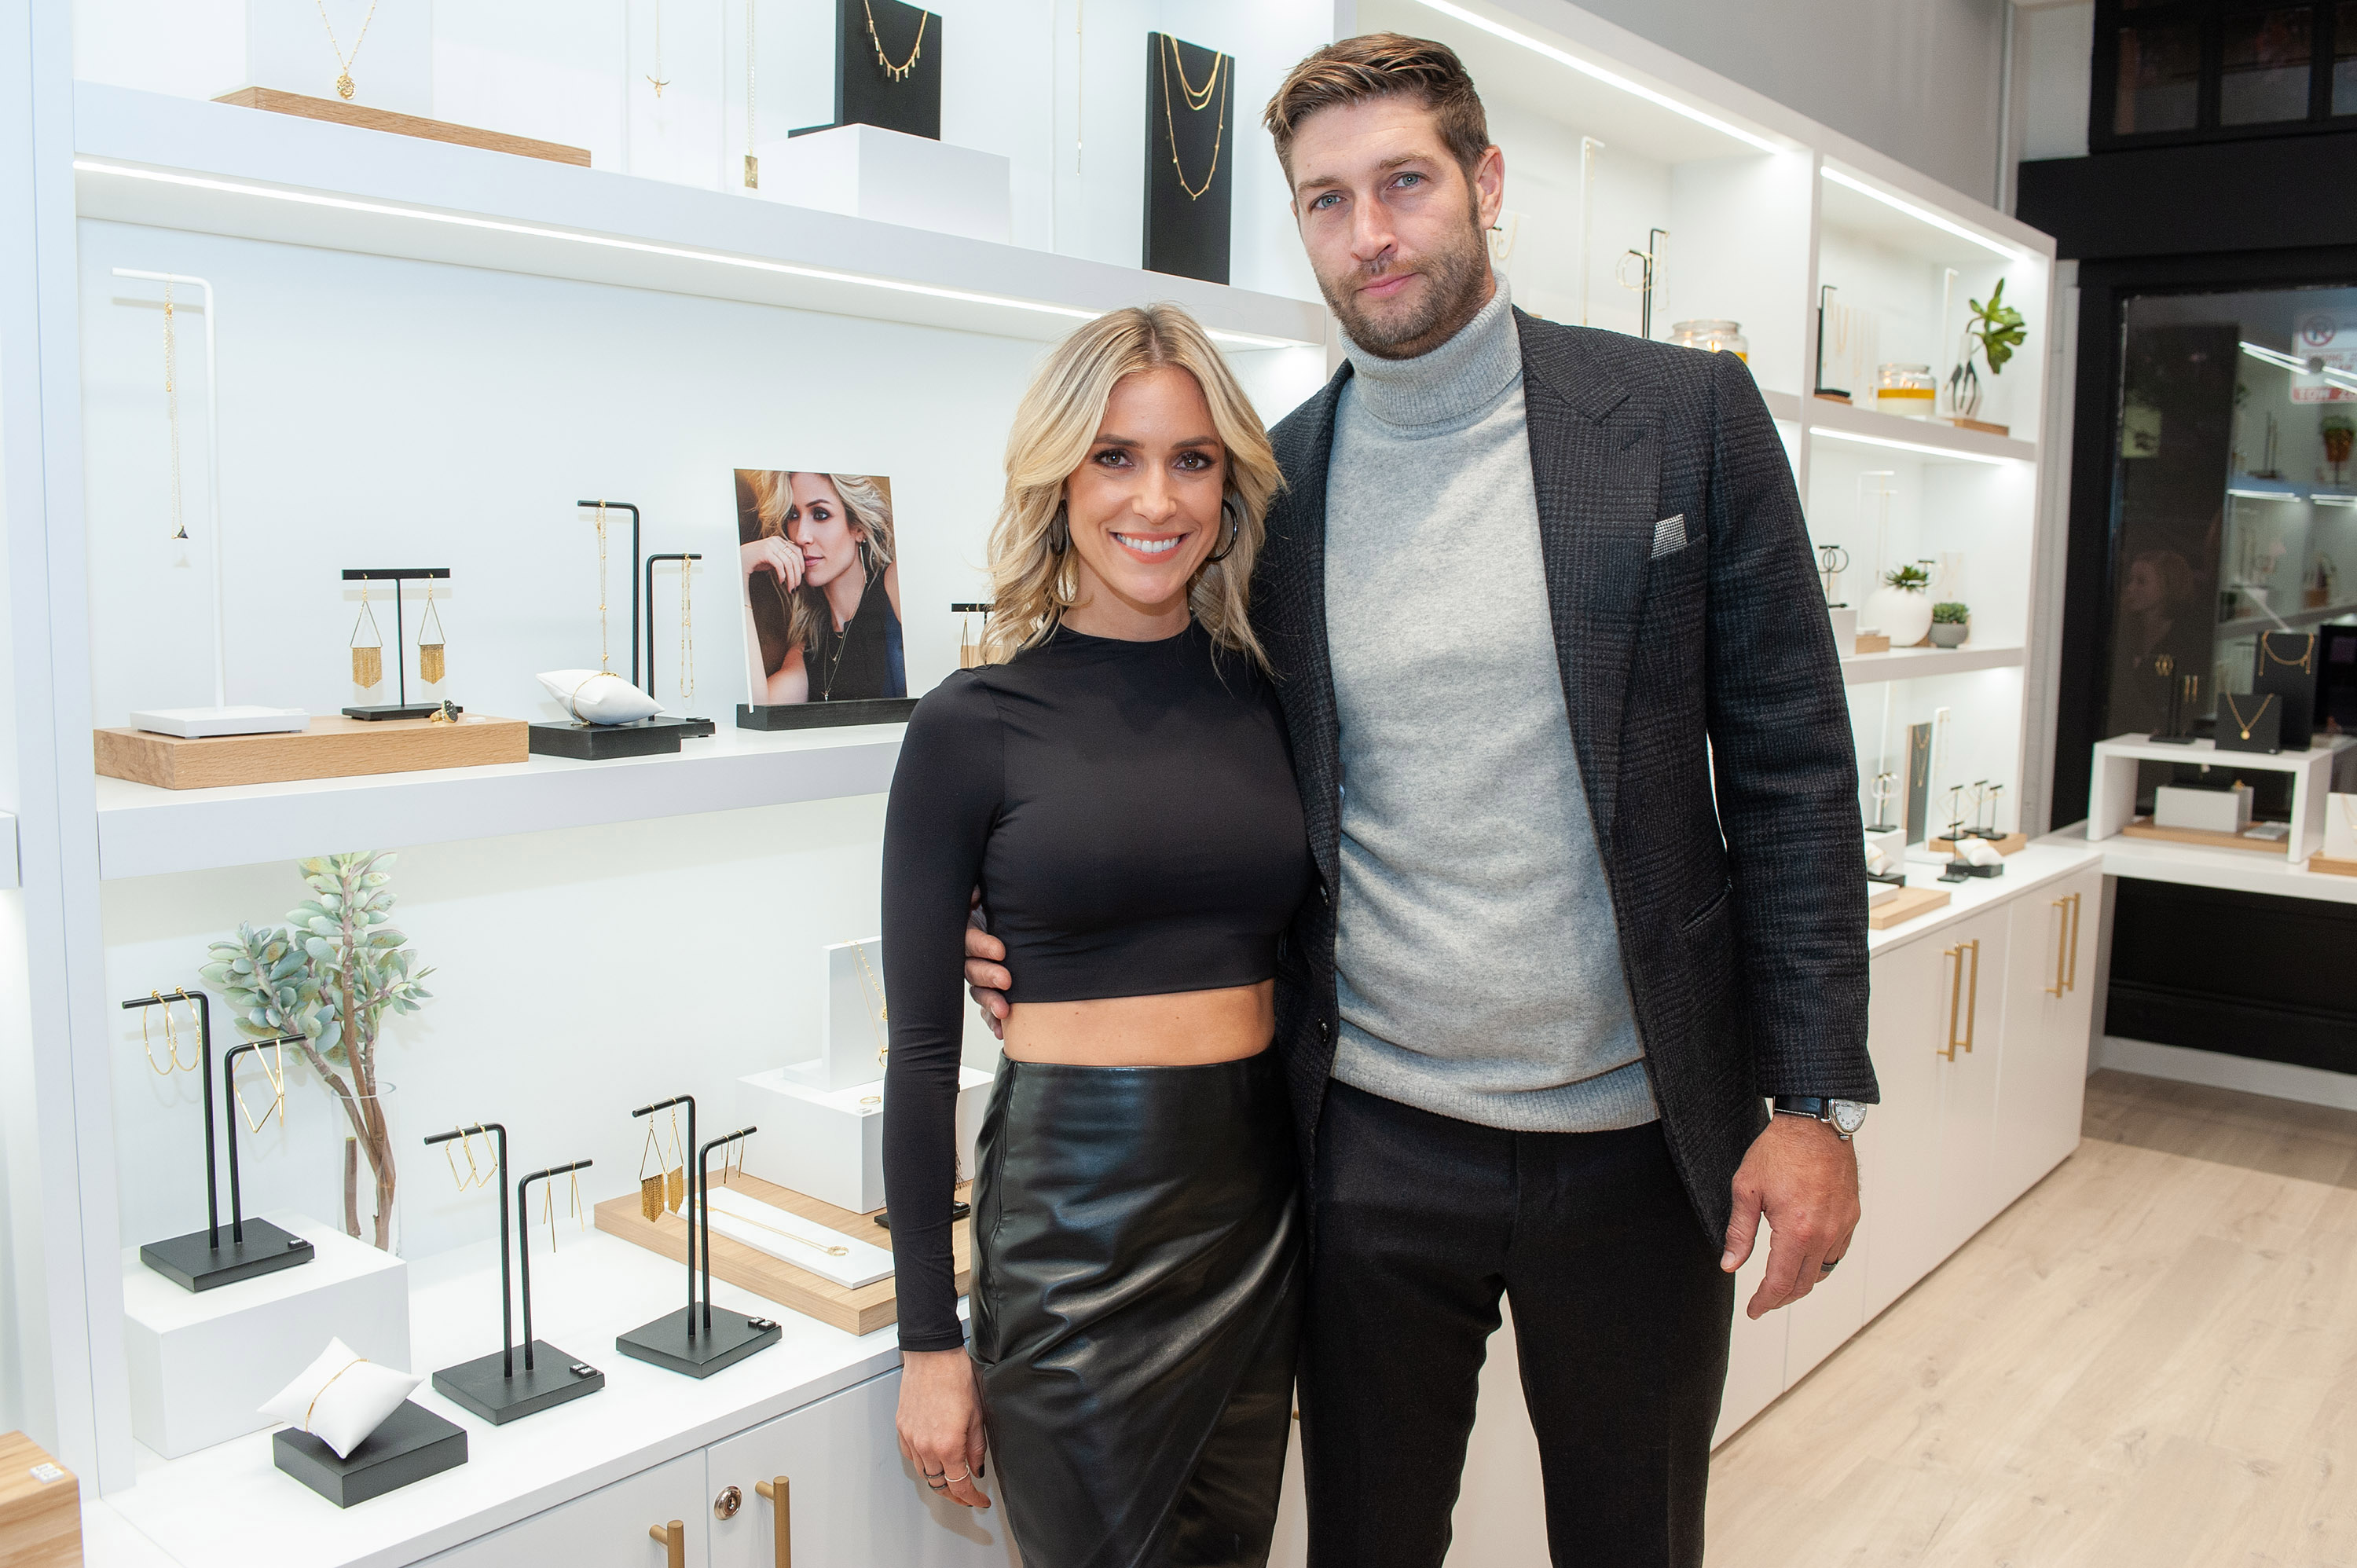 Kristin Cavallari breaks silence about divorcing Jay Cutler, admits they had problems for years